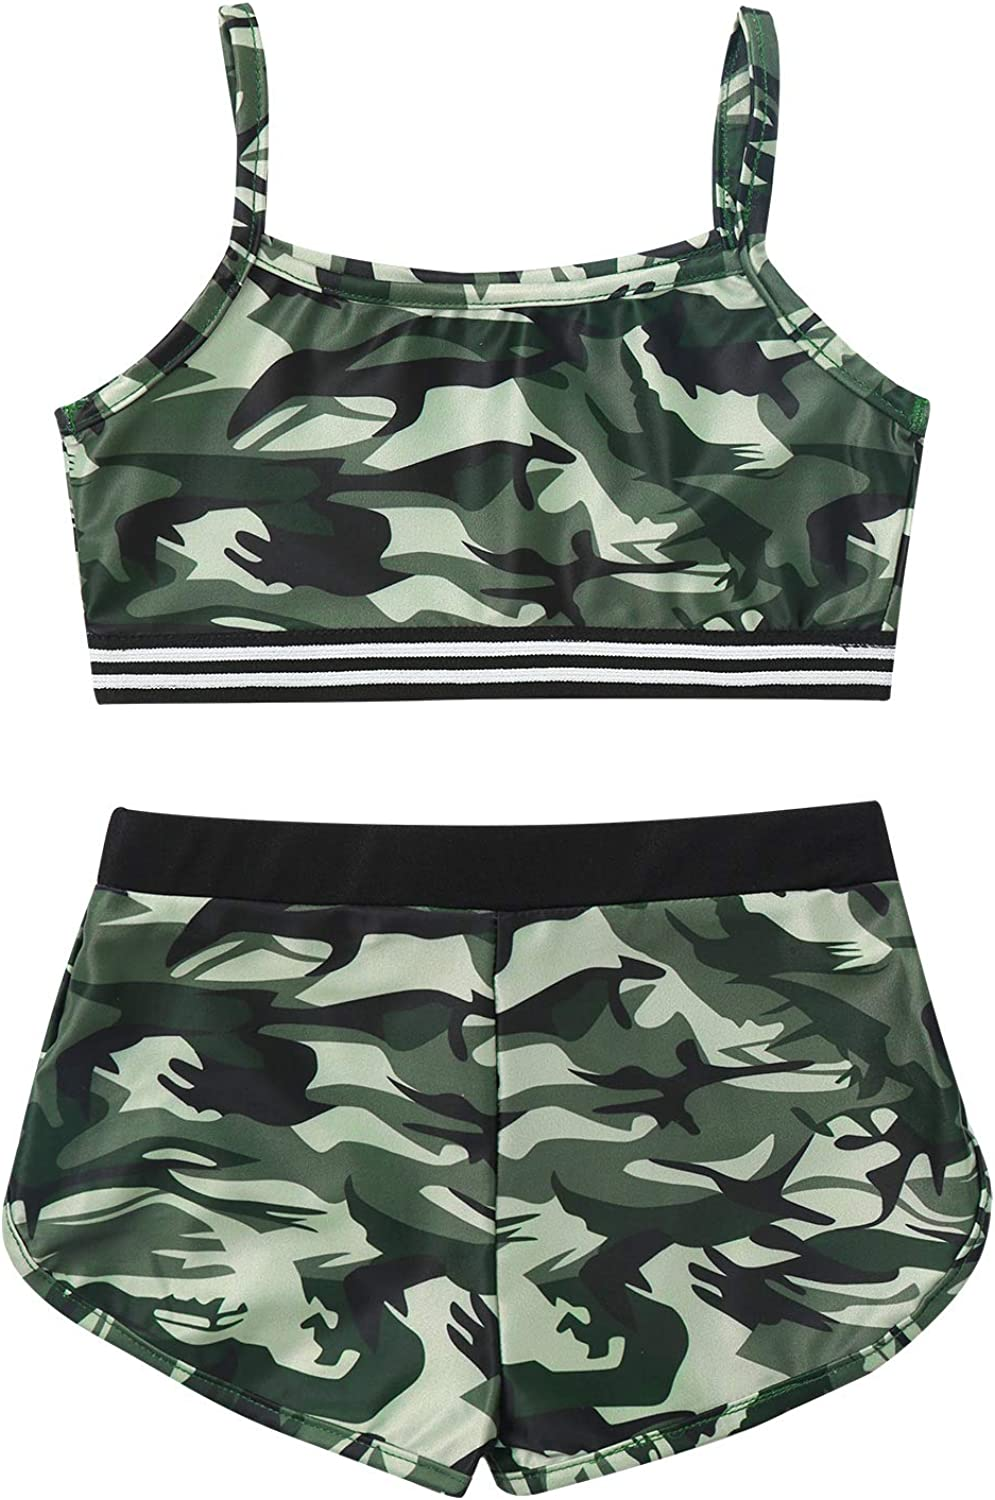 TiaoBug Kids Girls Athletic Tracksuit 2 Pieces Dance Sports Outfits Spaghetti Strap Camouflage Crop Top and Shorts Set